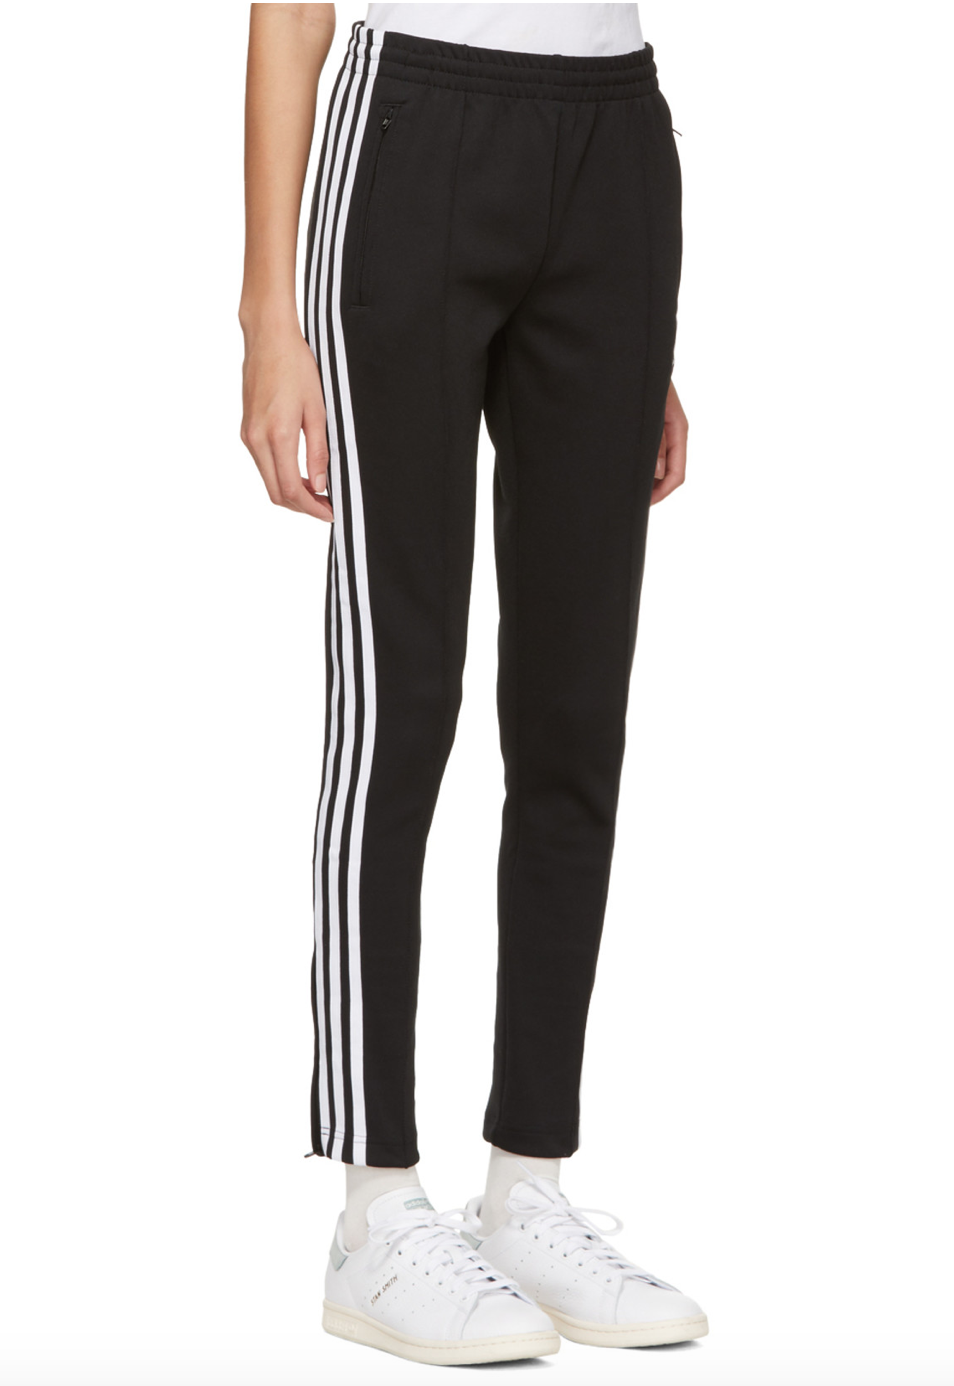 ADIDAS SIDE STRIPE SWEATPANTS